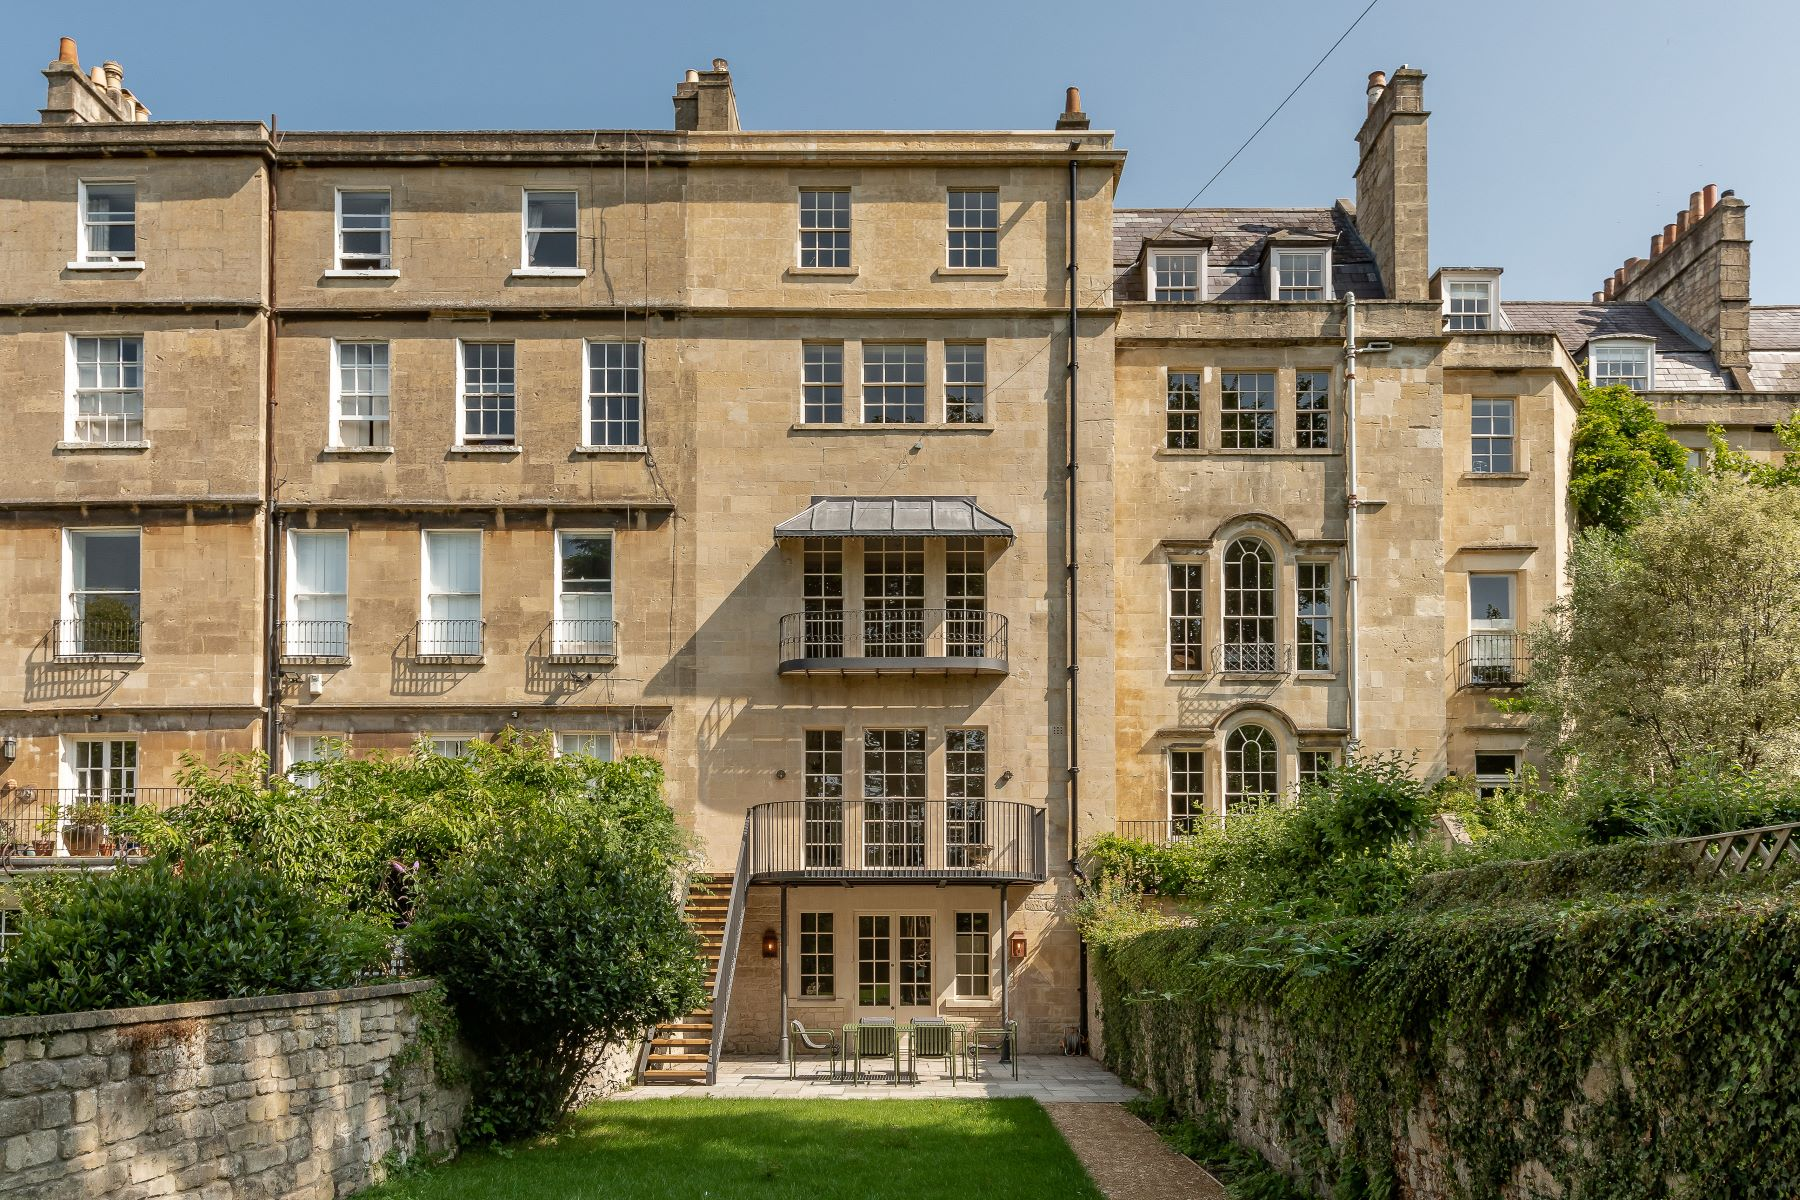 townhouses for Sale at 5 Brock Street Bath, England BA1 2LN United Kingdom